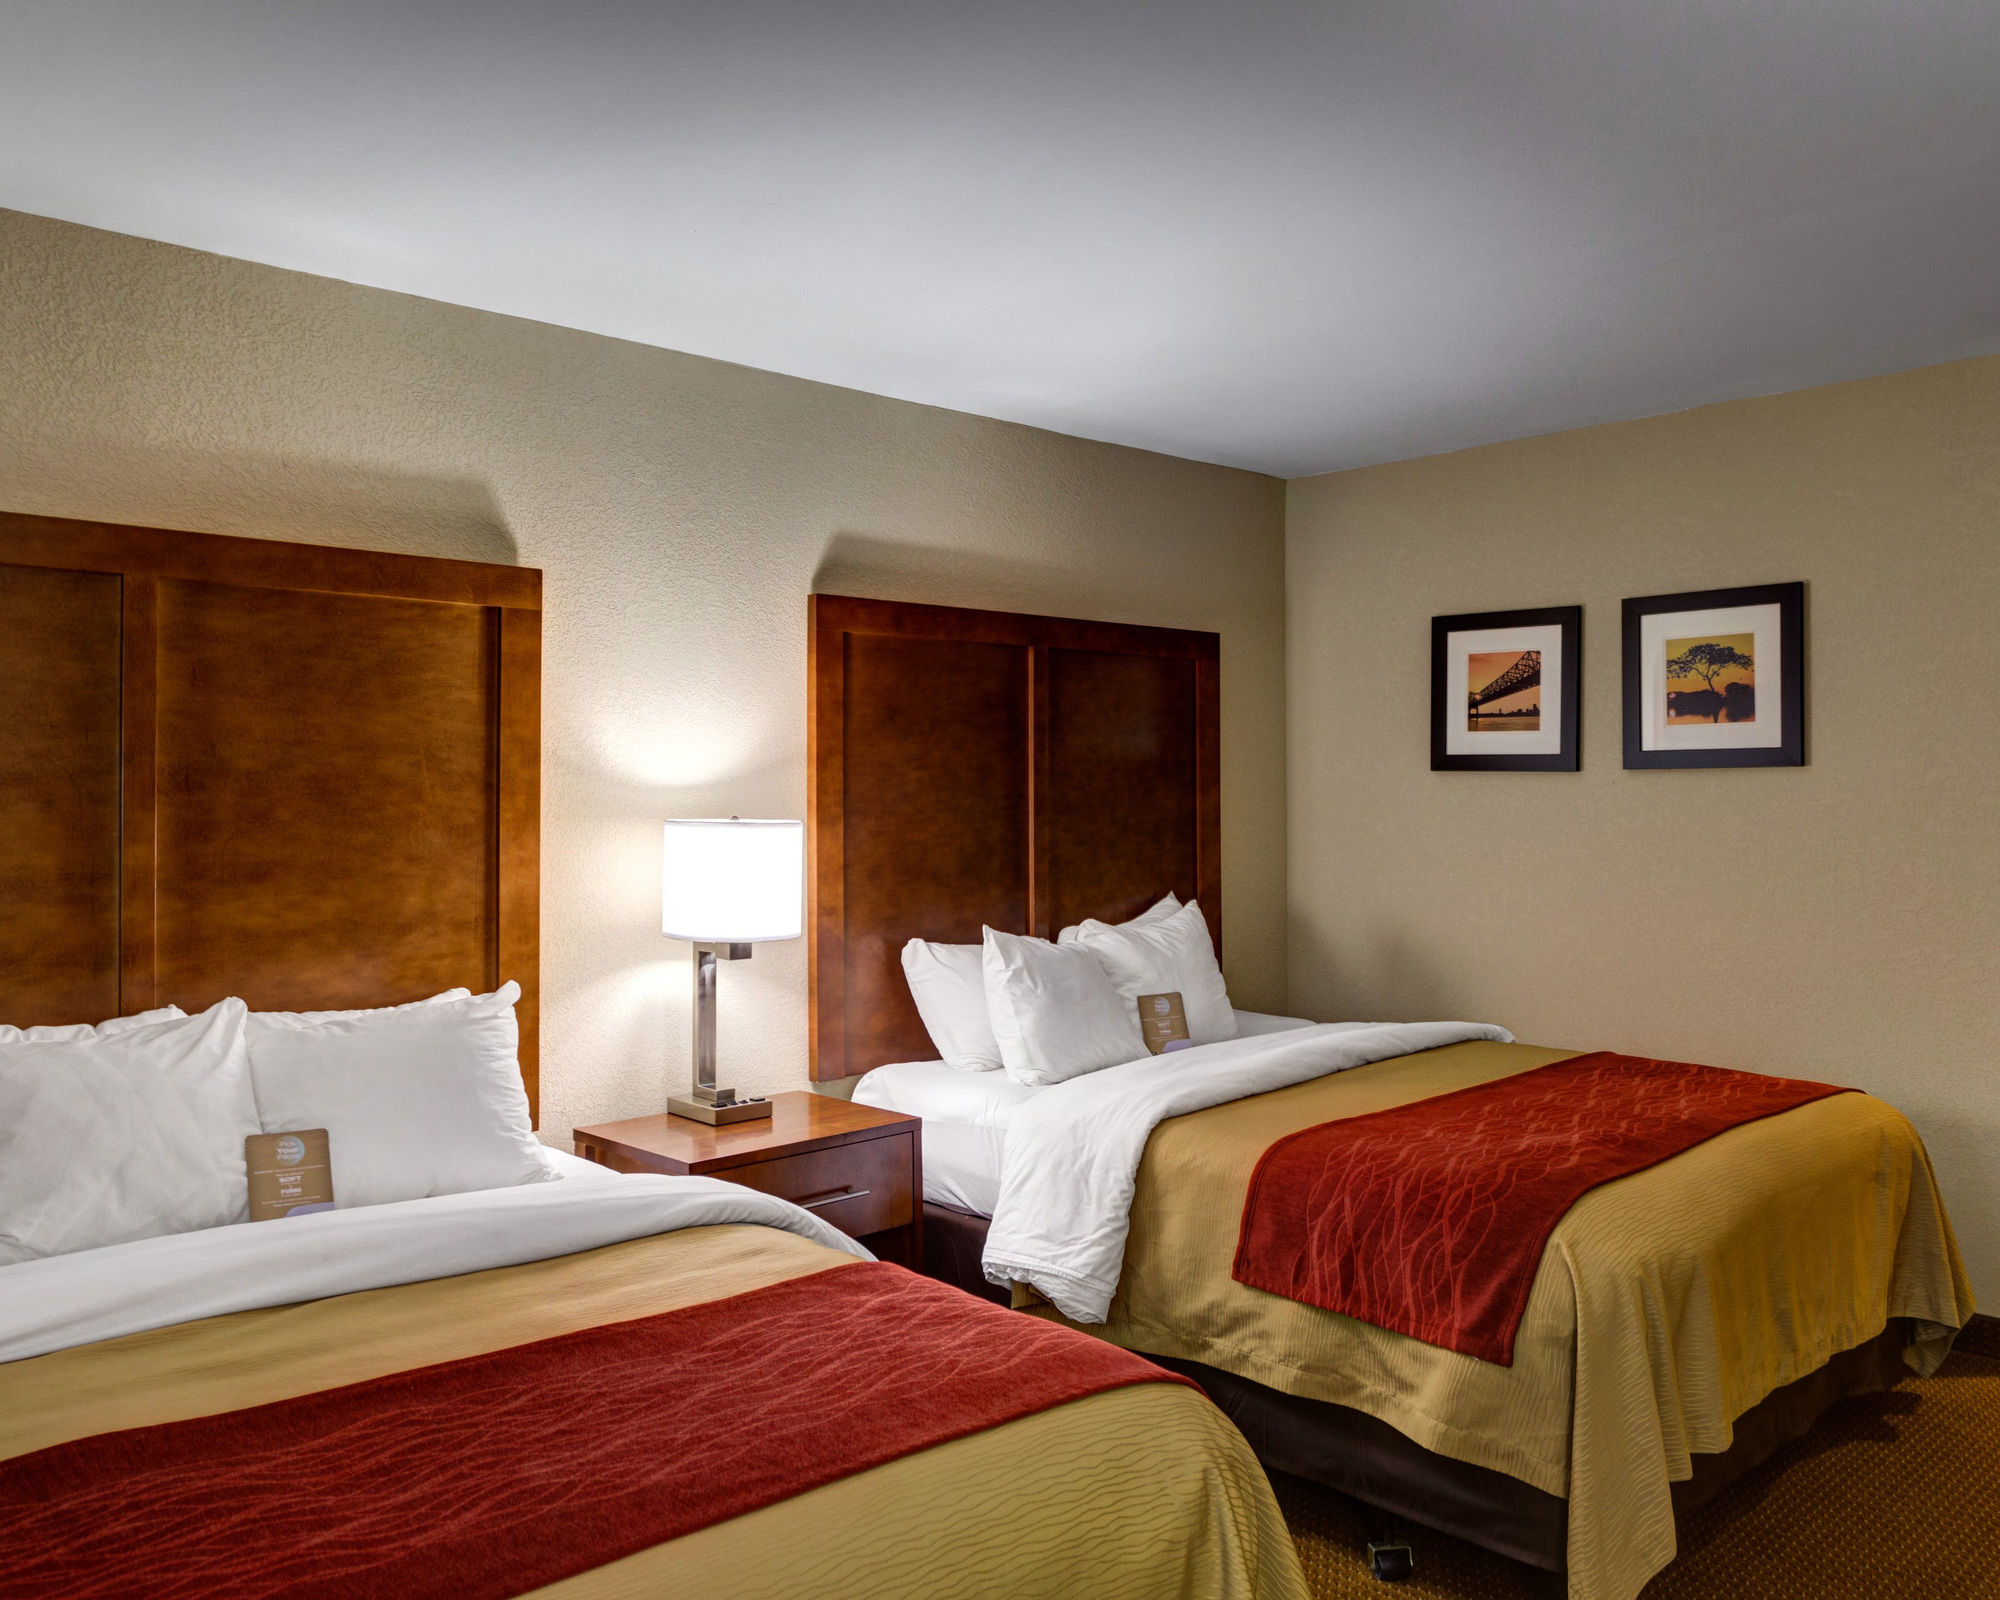 Covington Hotel Coupons for Covington, Louisiana - FreeHotelCoupons.com